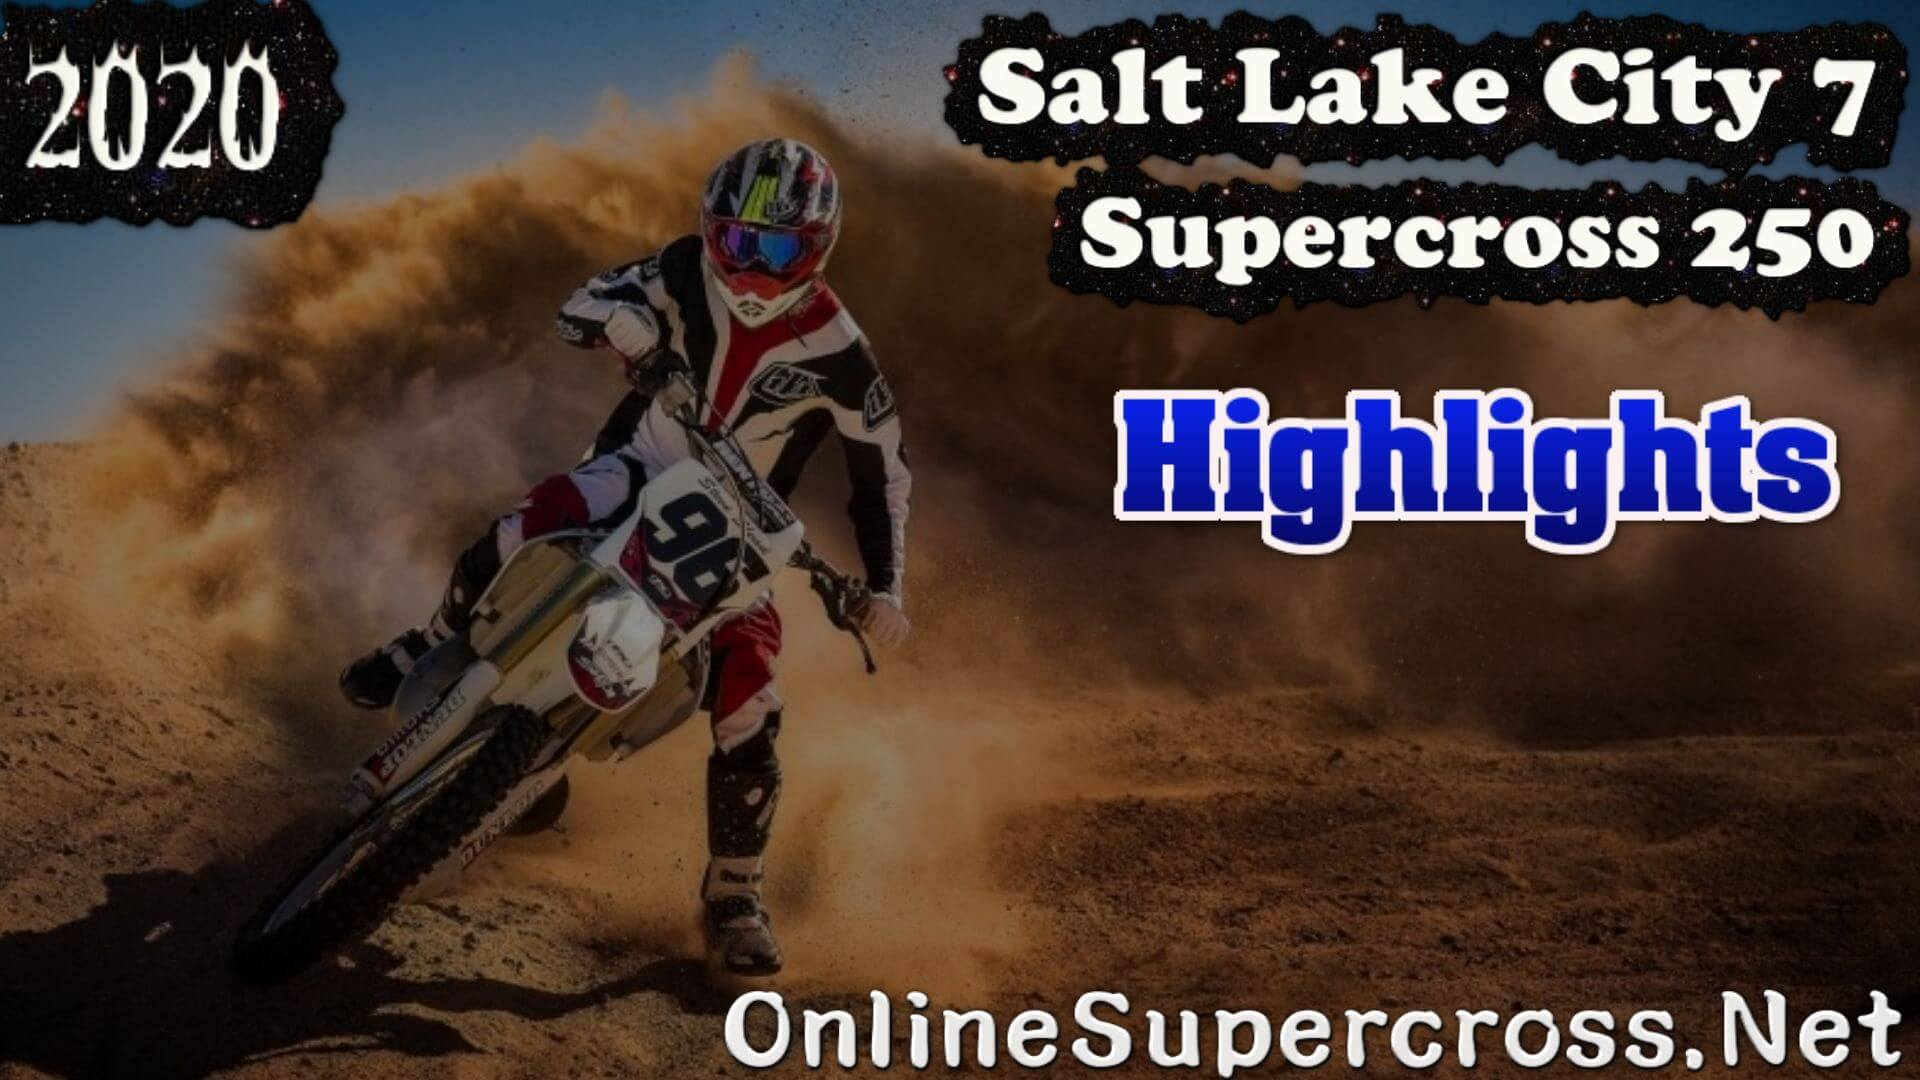 Salt Lake City 7 Supercross 250 Highlights 2020